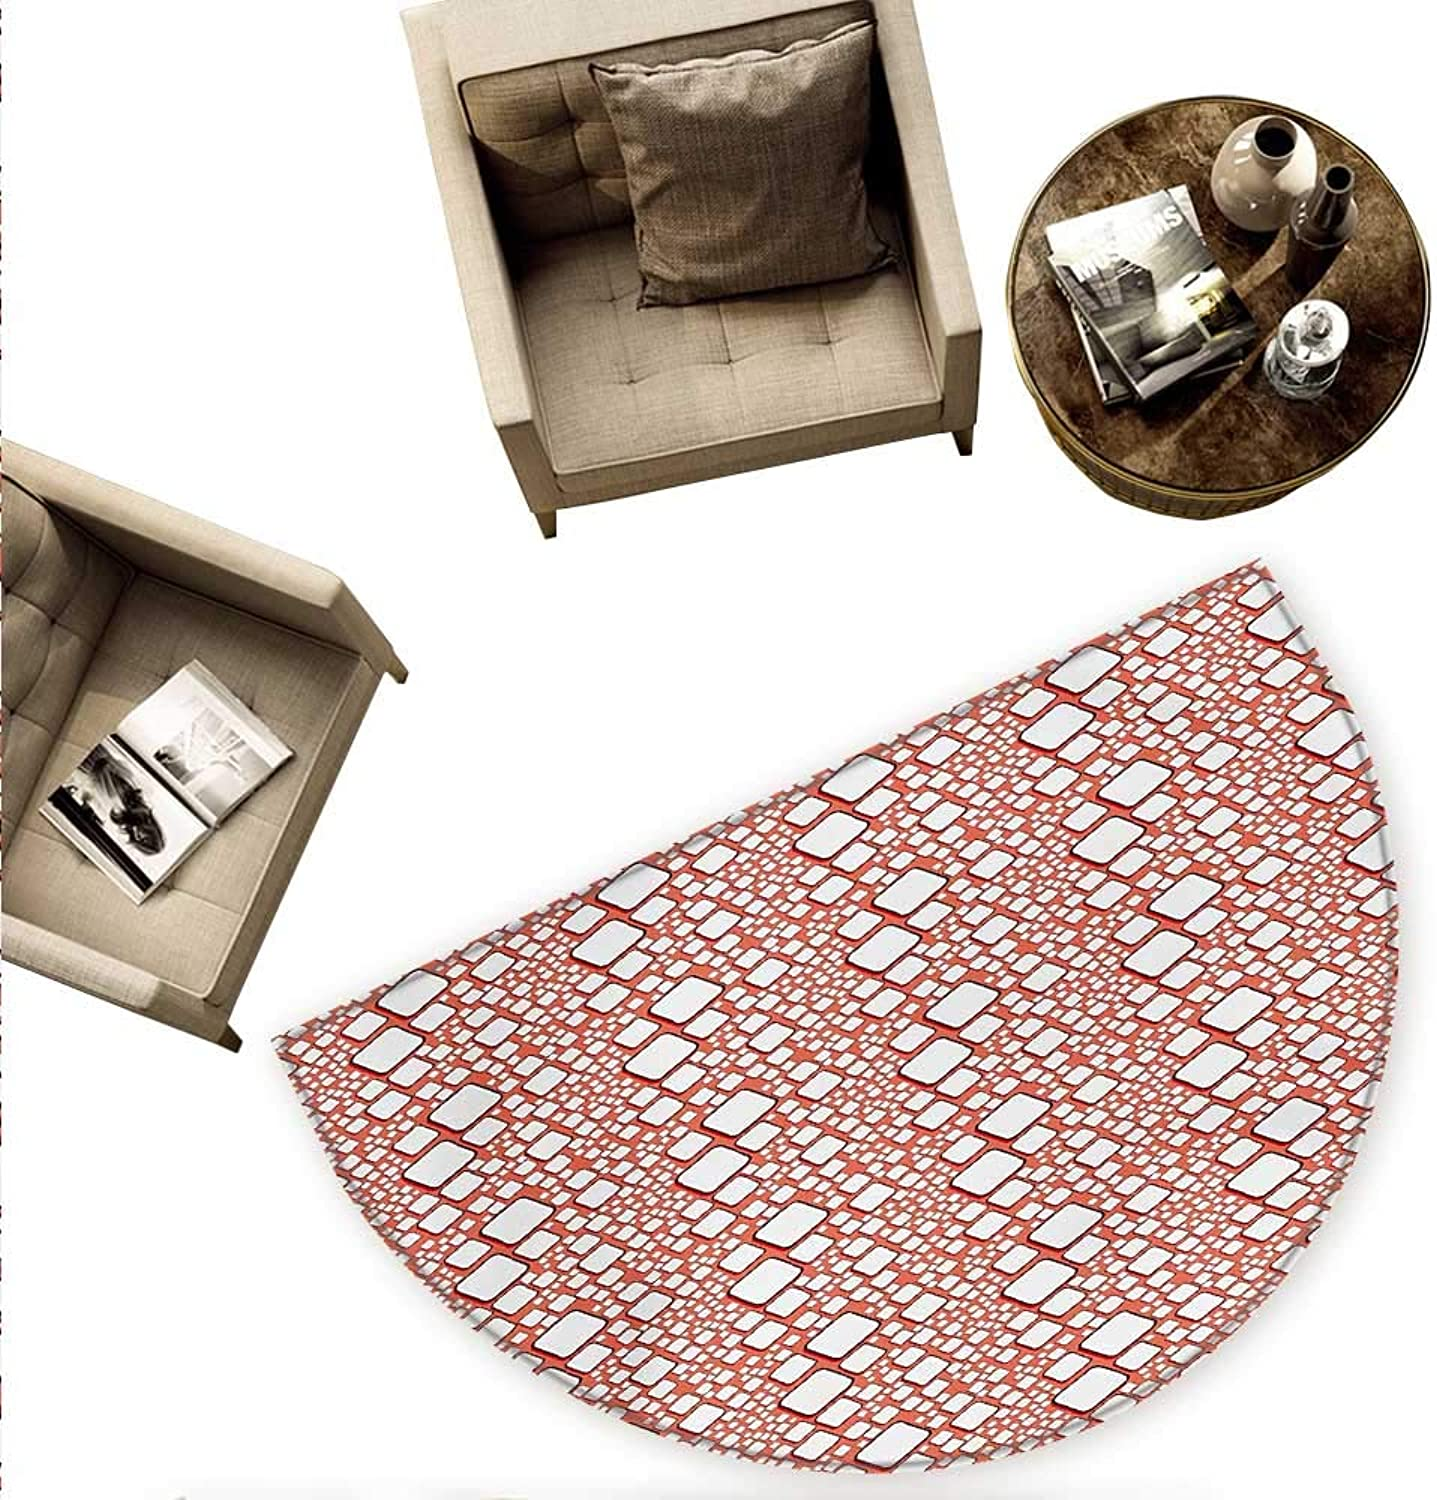 Abstract Semicircular Cushion Ornamental Squares with Oval Corners in Various Shapes Geometric Pattern Entry Door Mat H 78.7  xD 118.1  Dark Salmon White